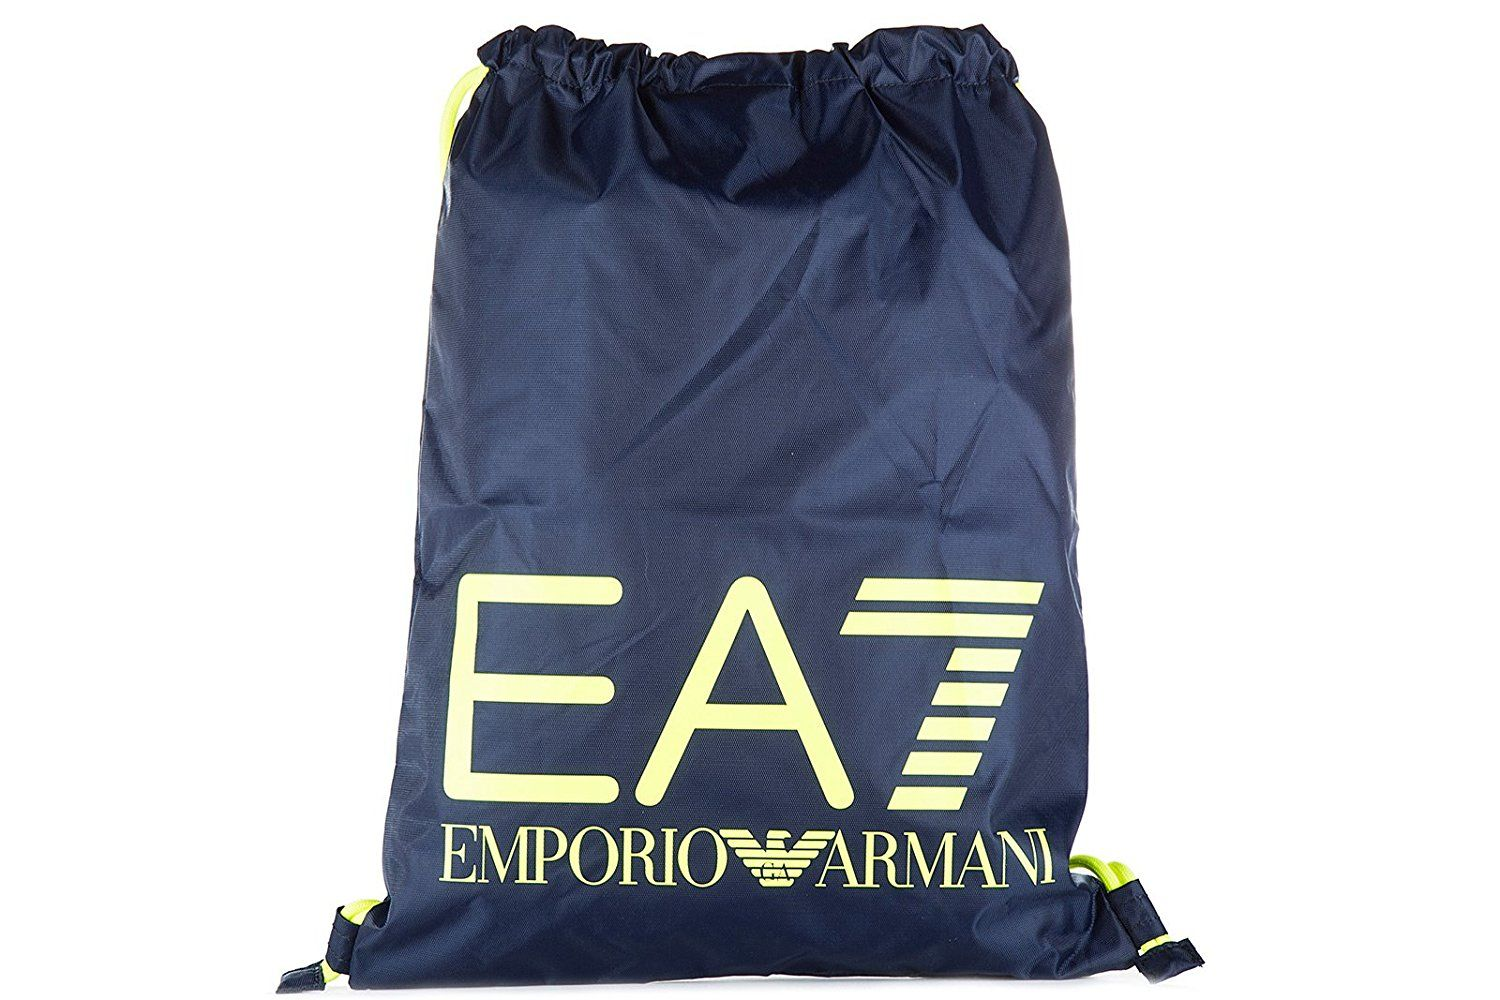 Emporio Armani EA7 men s Nylon rucksack backpack travel train big logo blu  Sale 50%. Now only  105.95 918fdc127d090